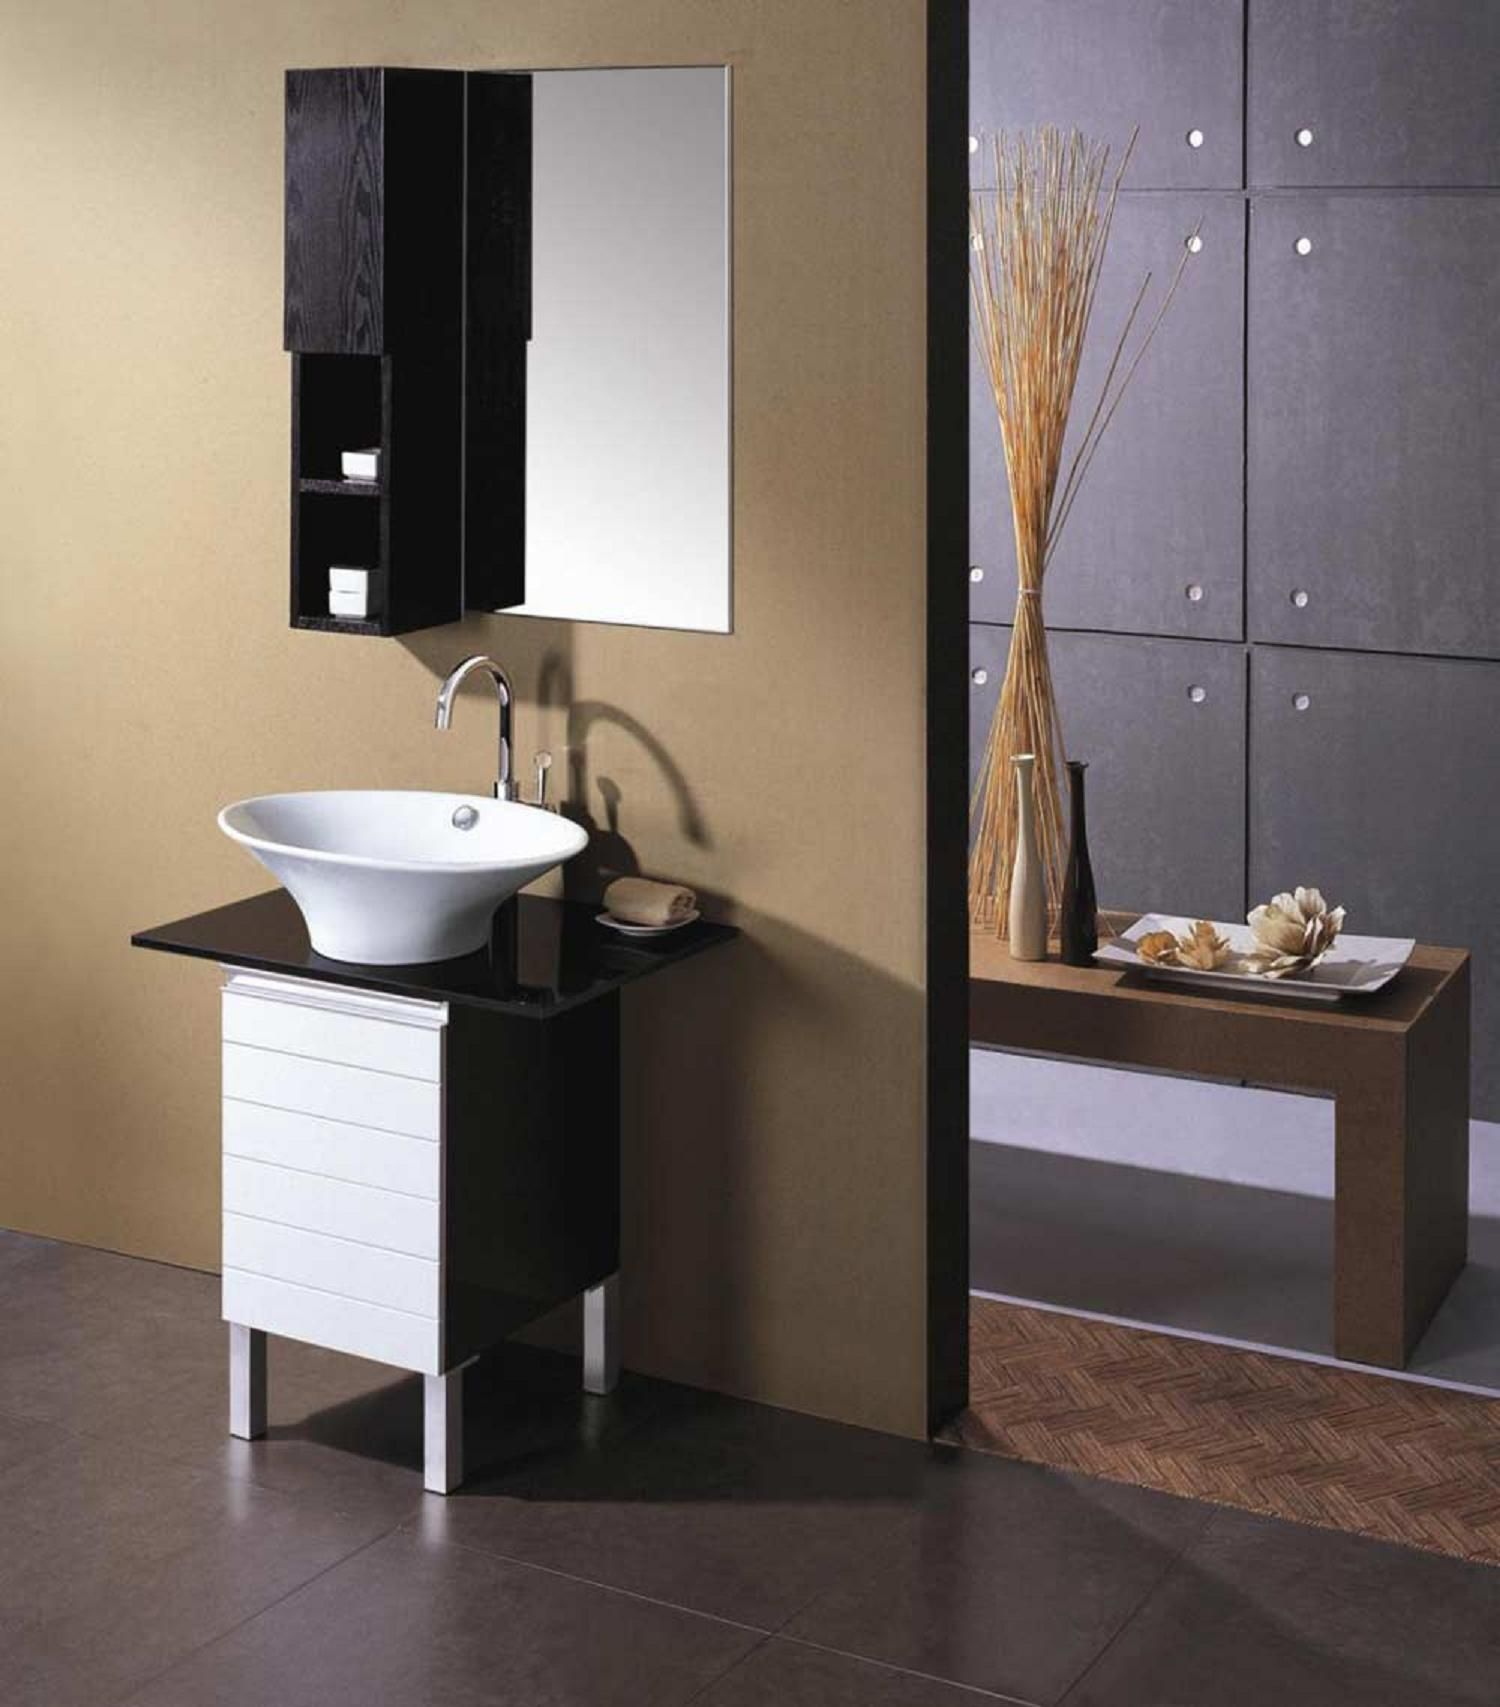 100 Vanity Sinks for Small Bathrooms Favorite Interior Paint Colors Check more at